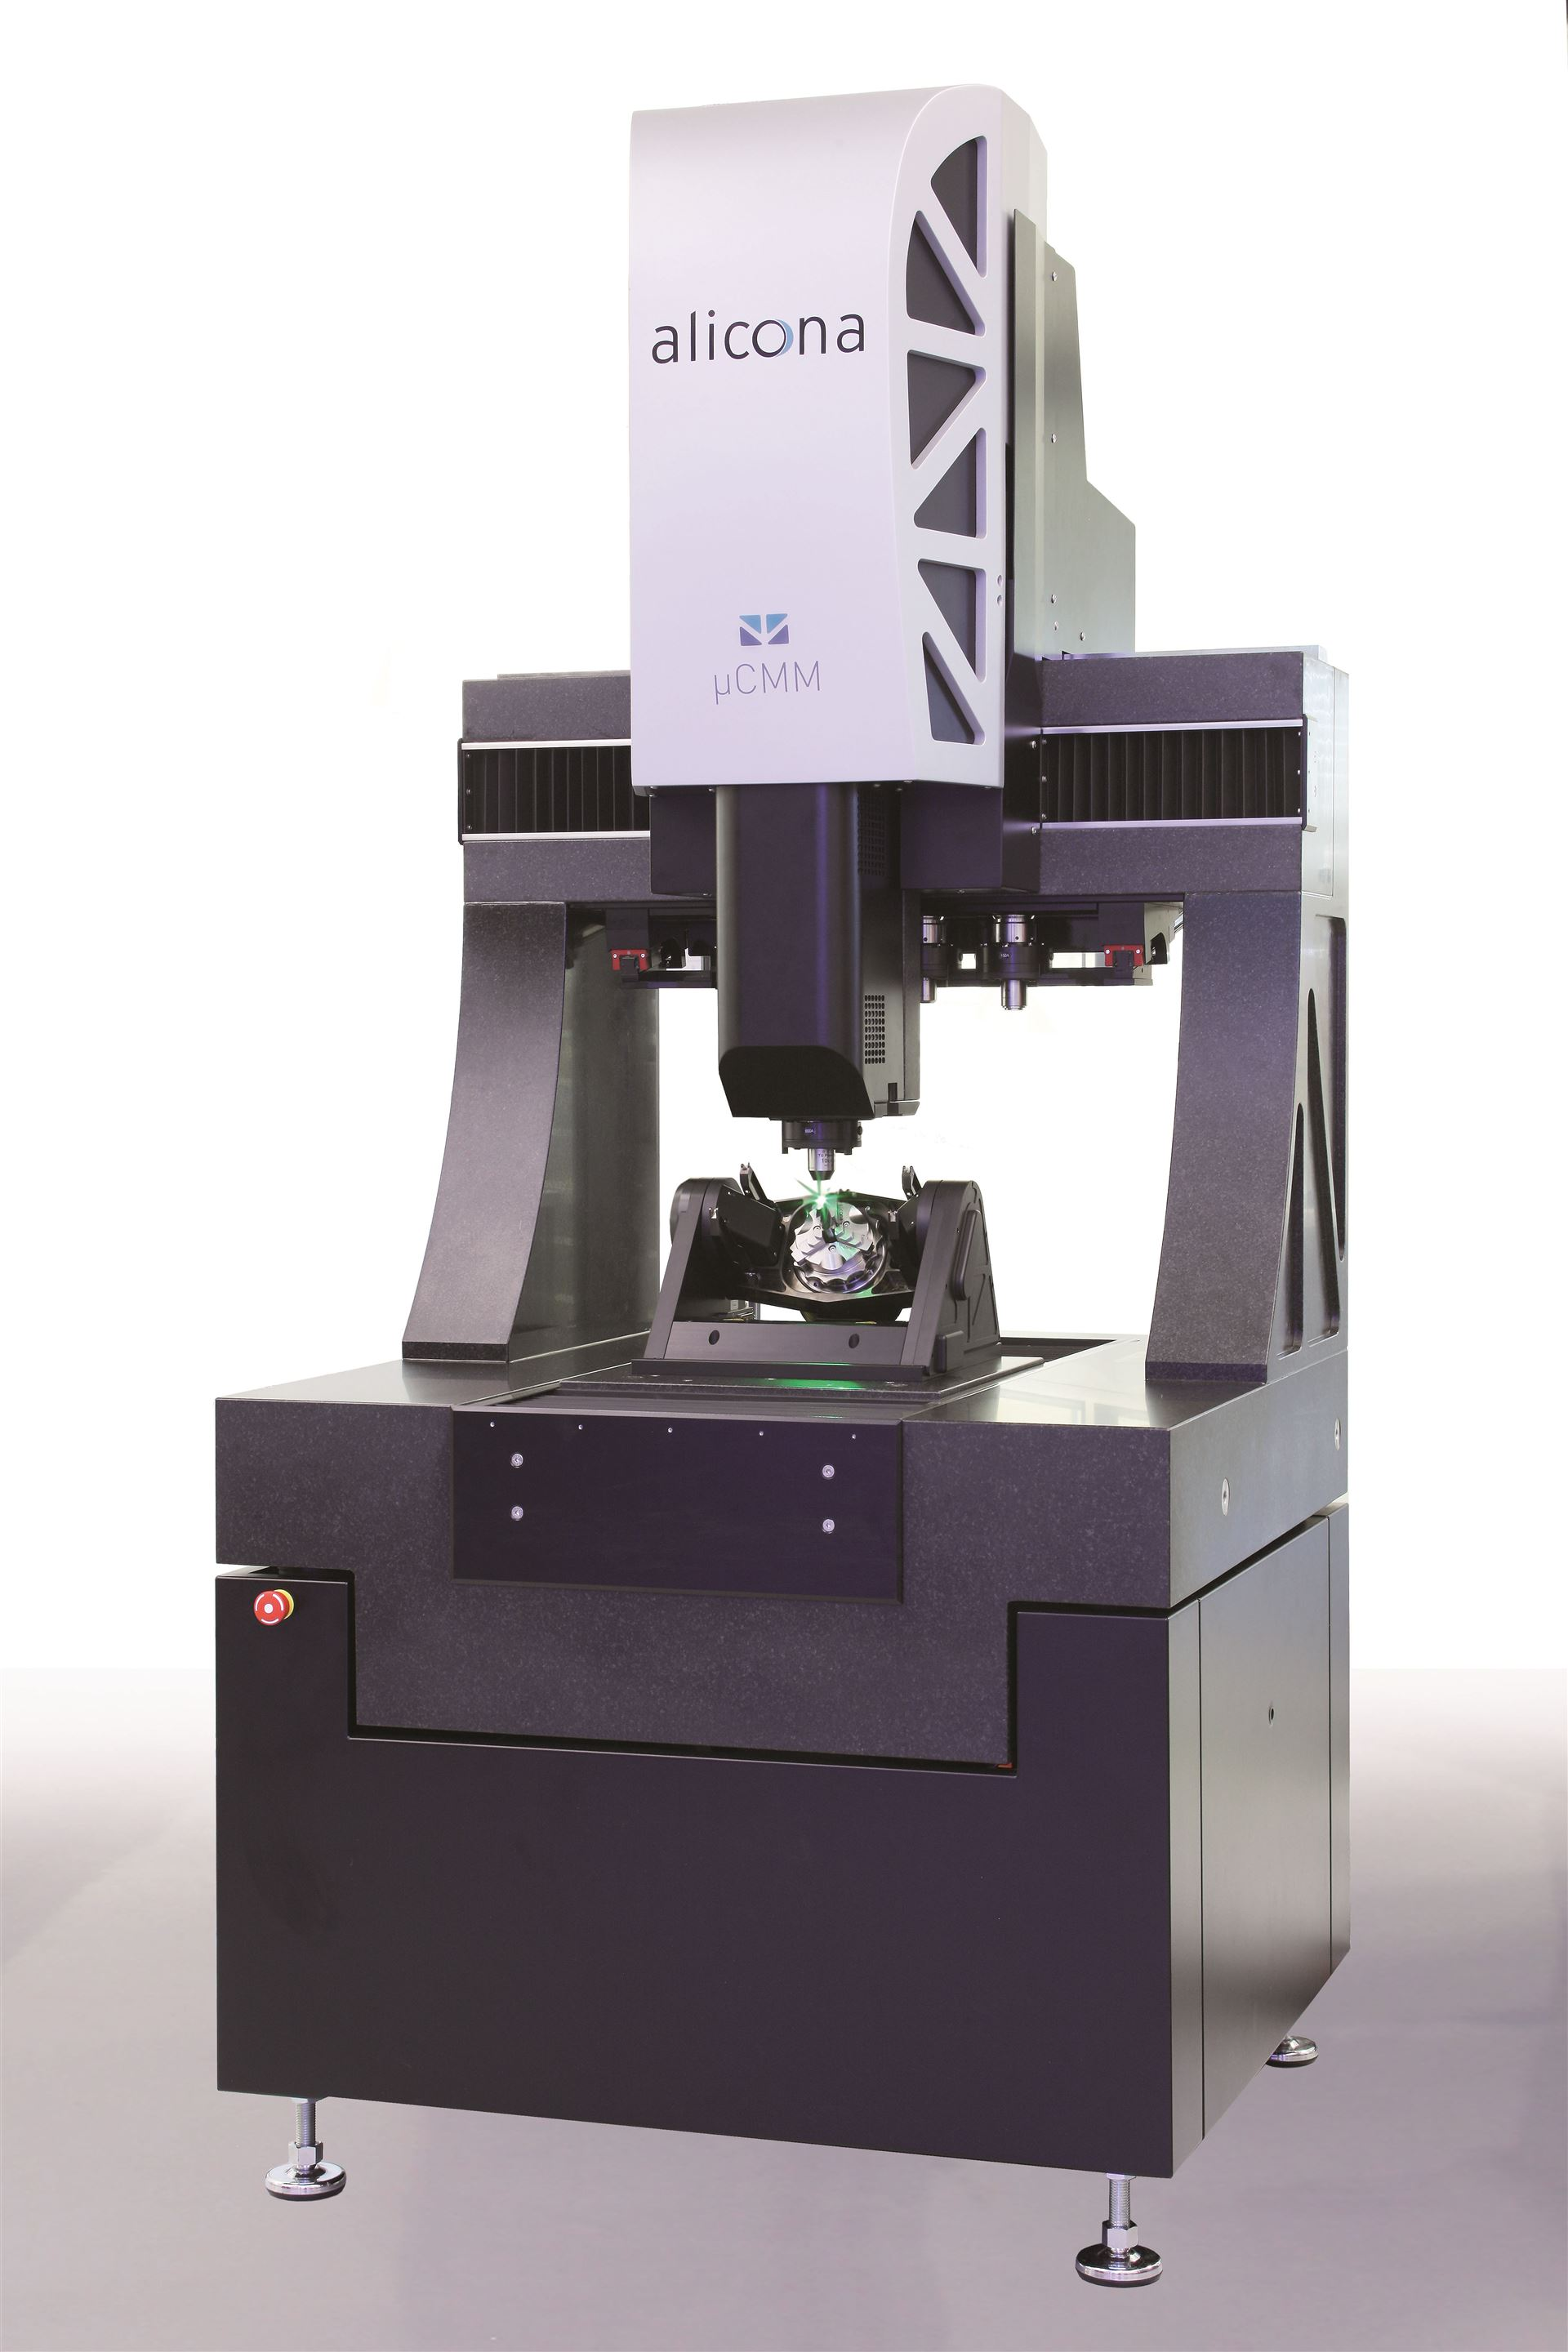 Optical µCMM micro coordinate measuring system for automatic measurement and evaluation of 3D data